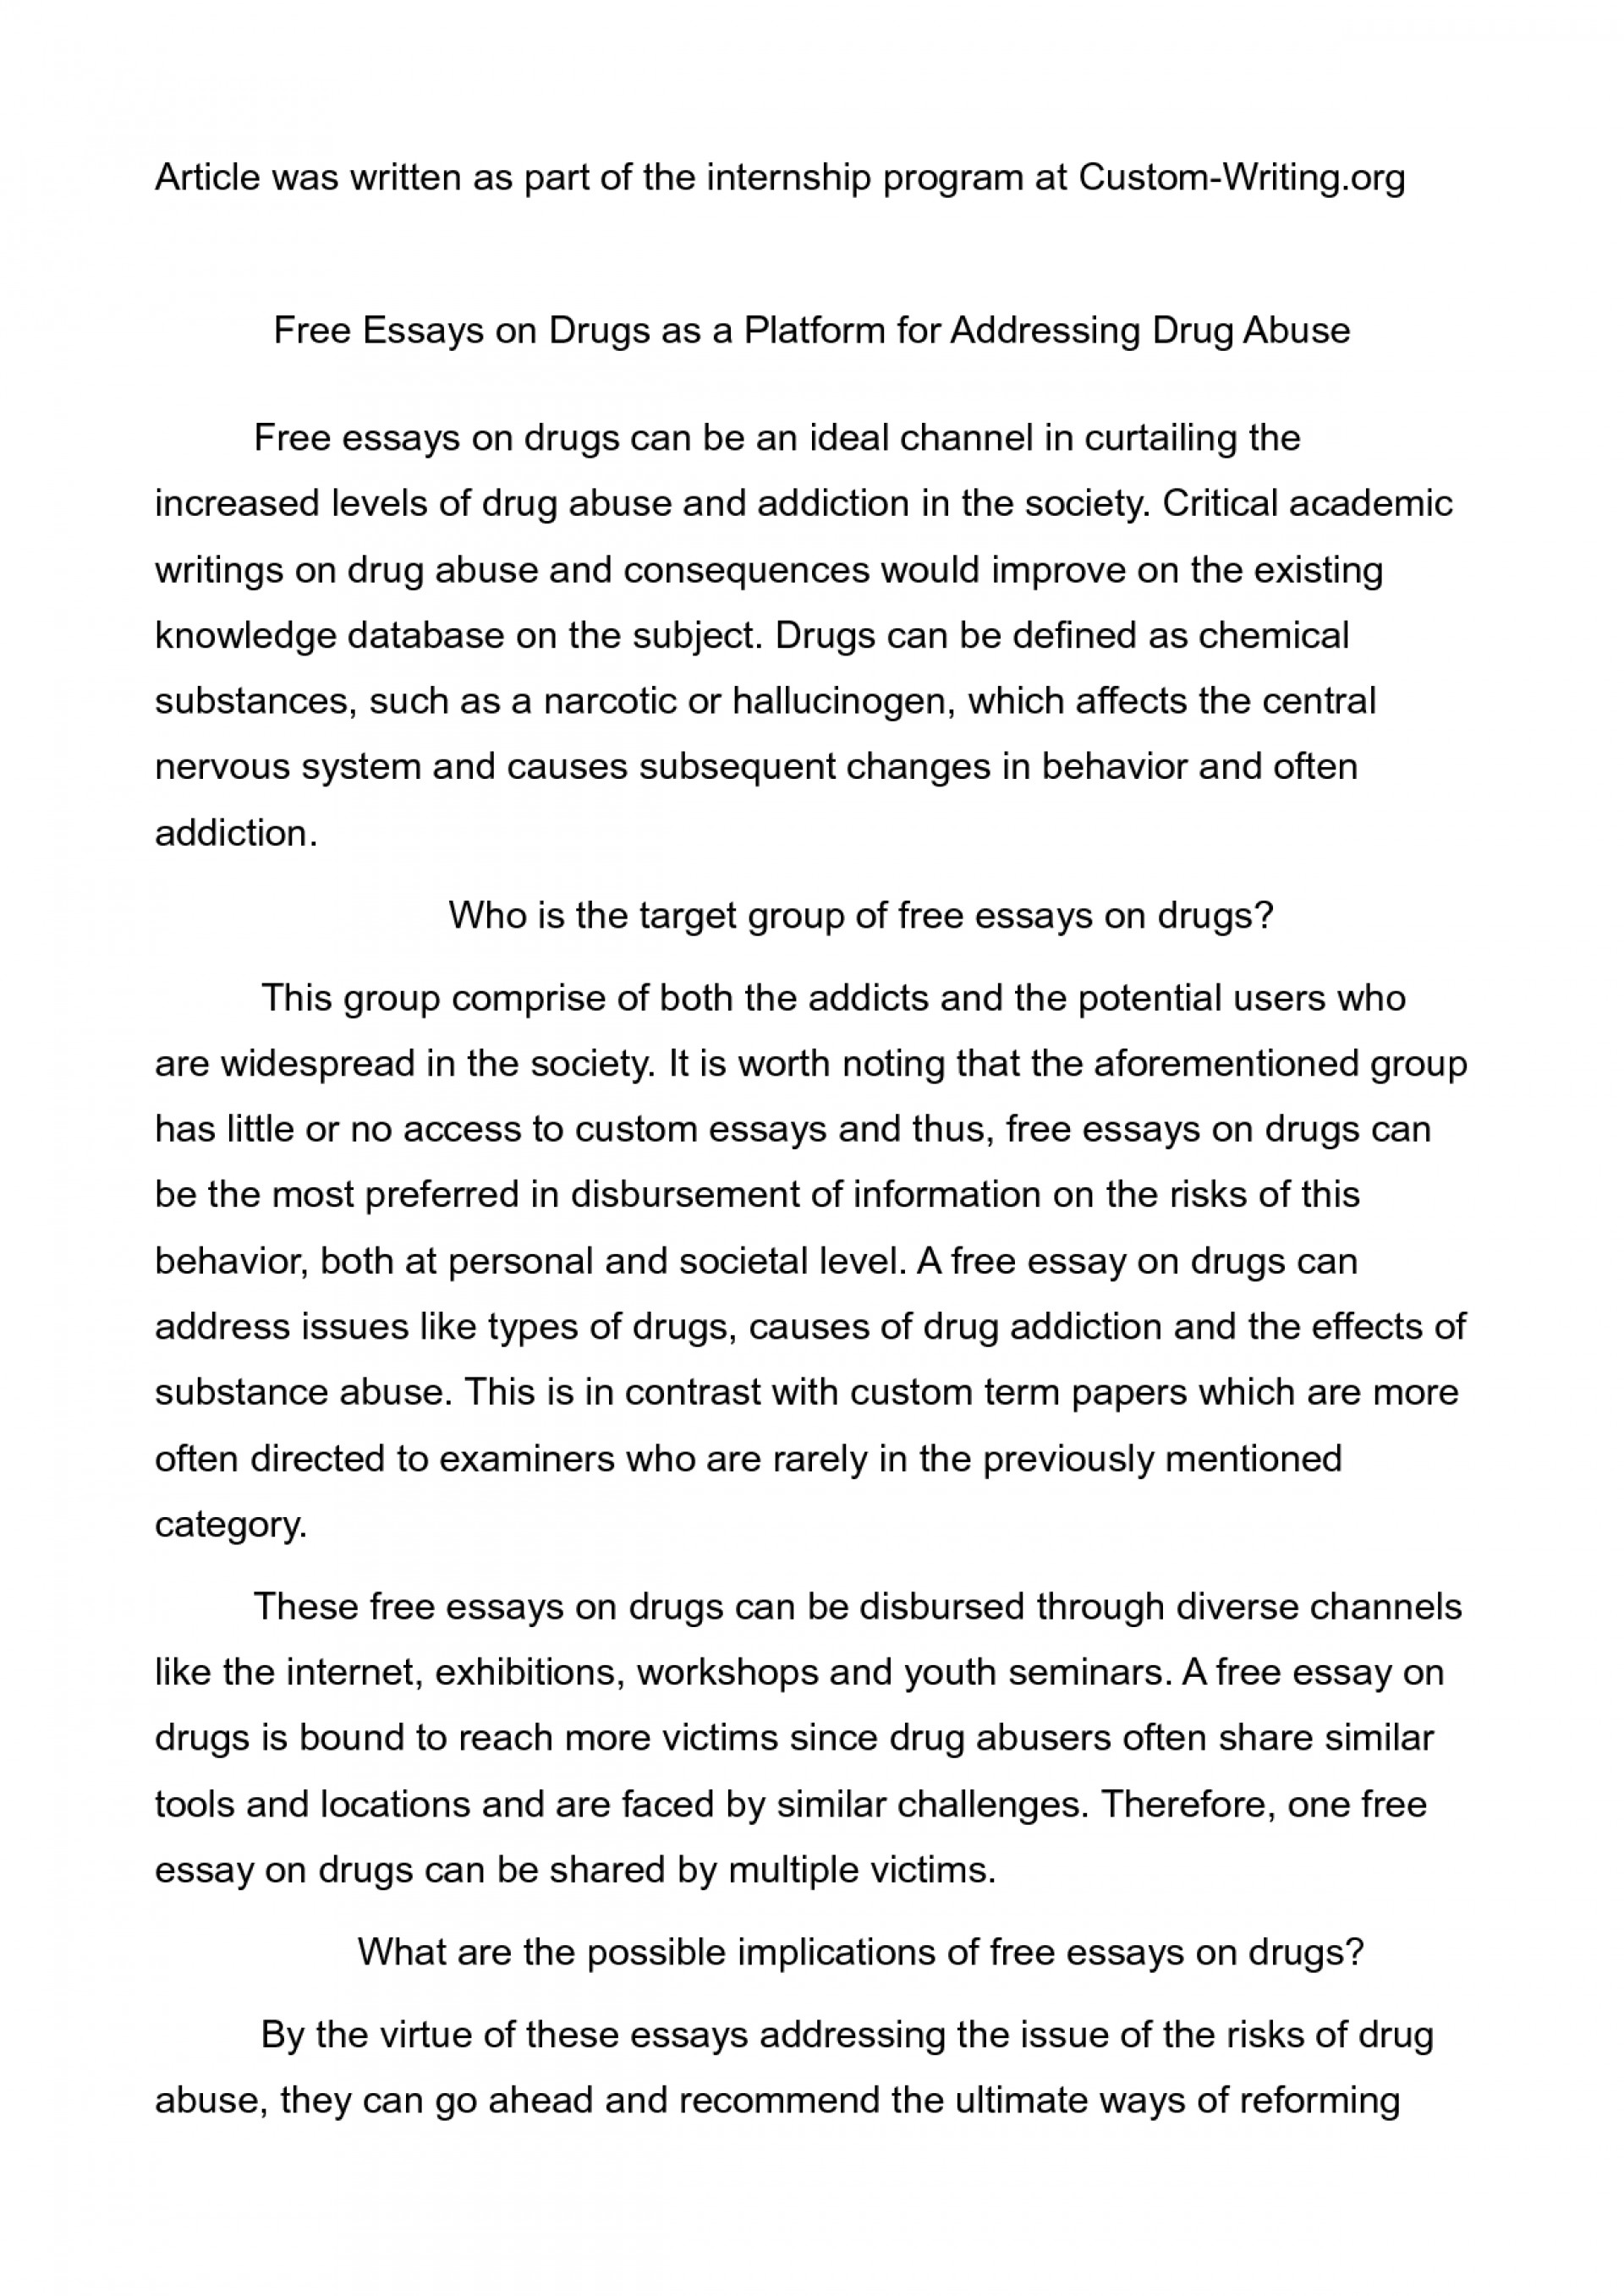 009 Argumentative Essay About Drugs Amazing Introduction Pdf Definition Format & Examples Topics Education 1920